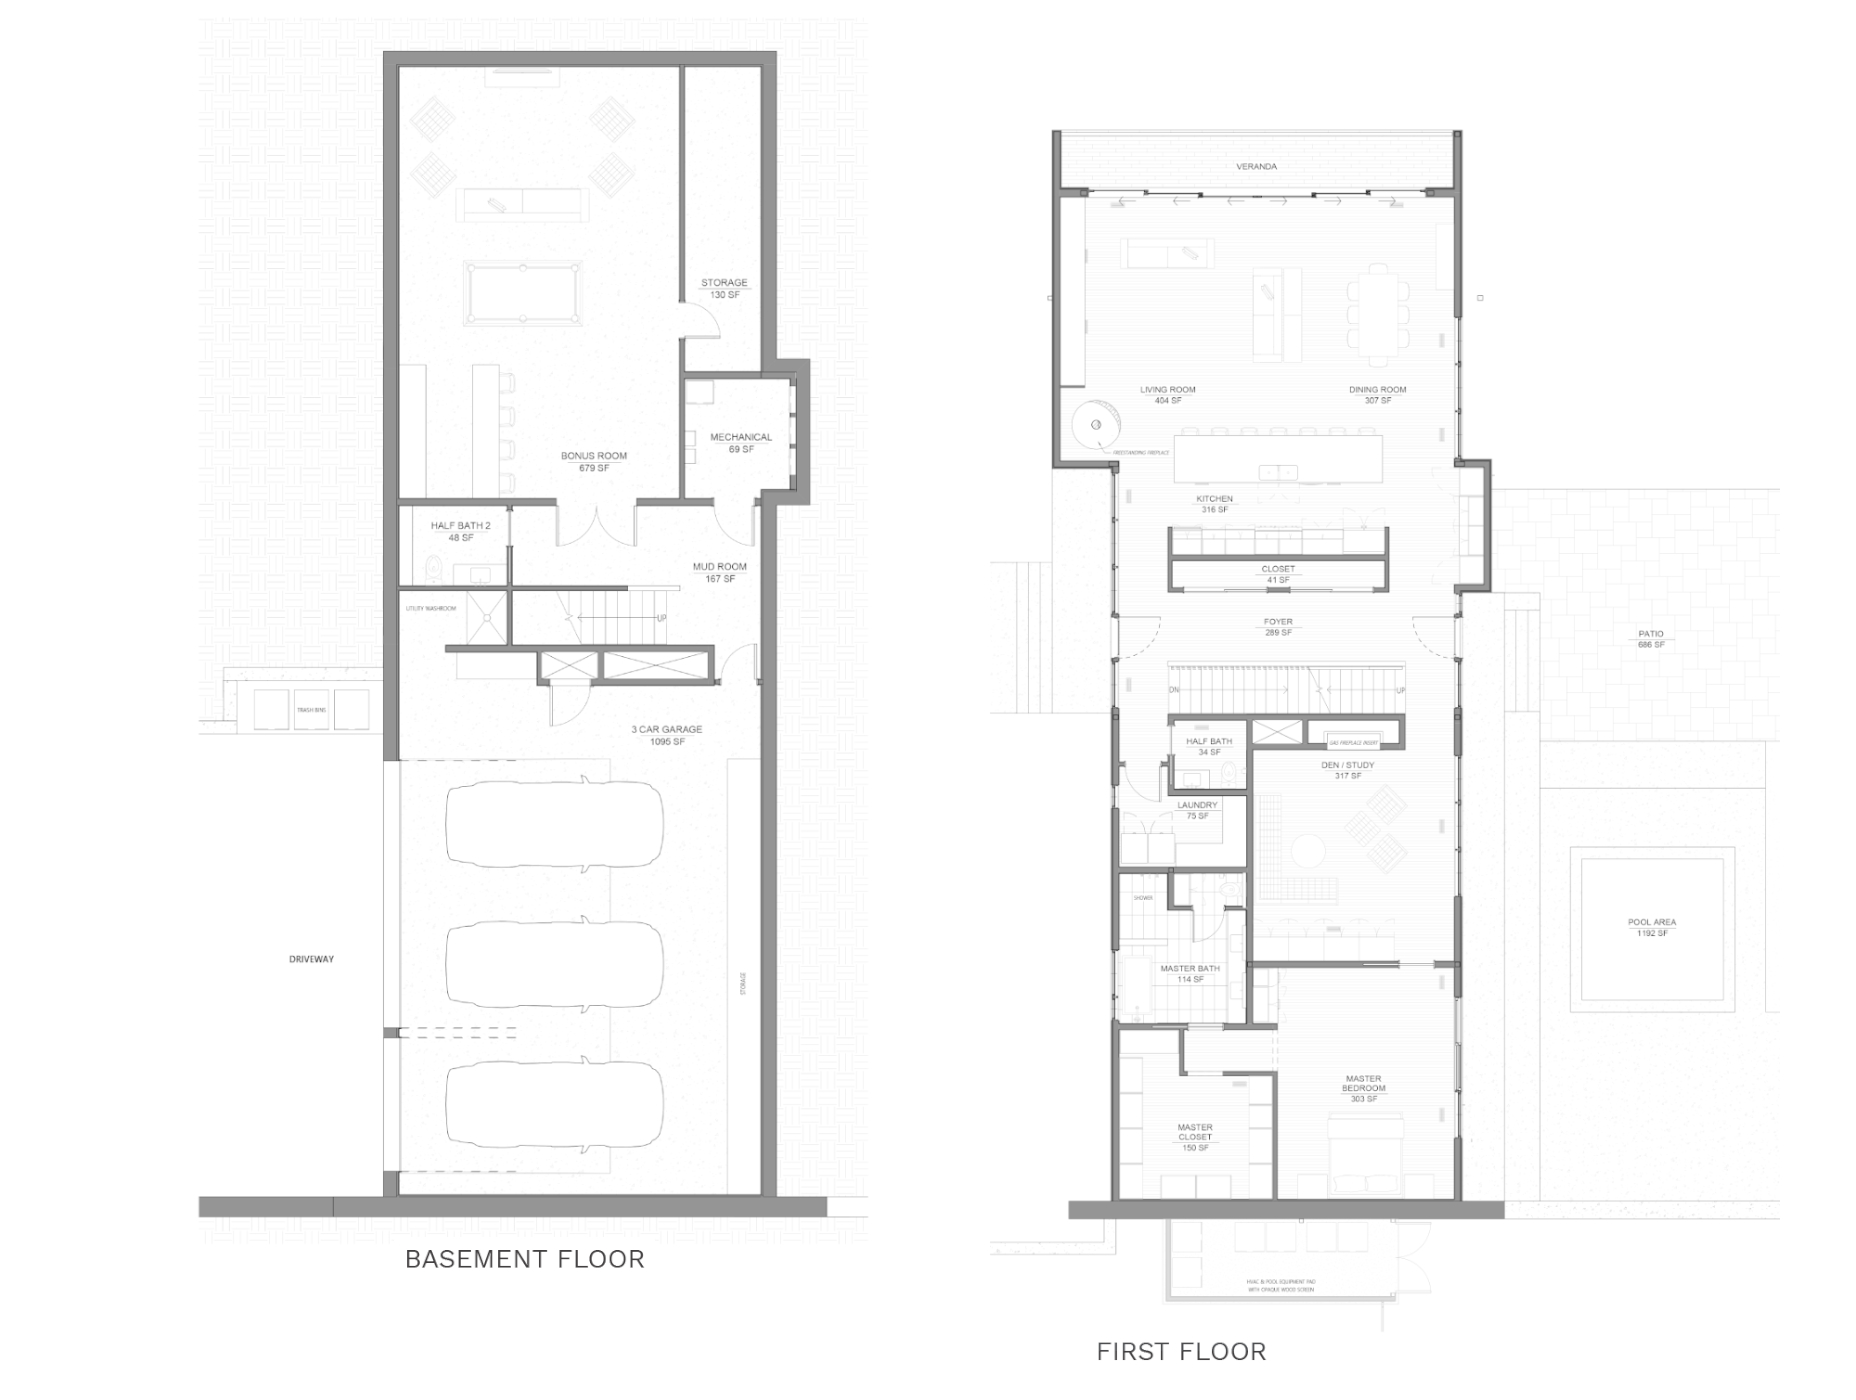 floorplan of basement and first floor